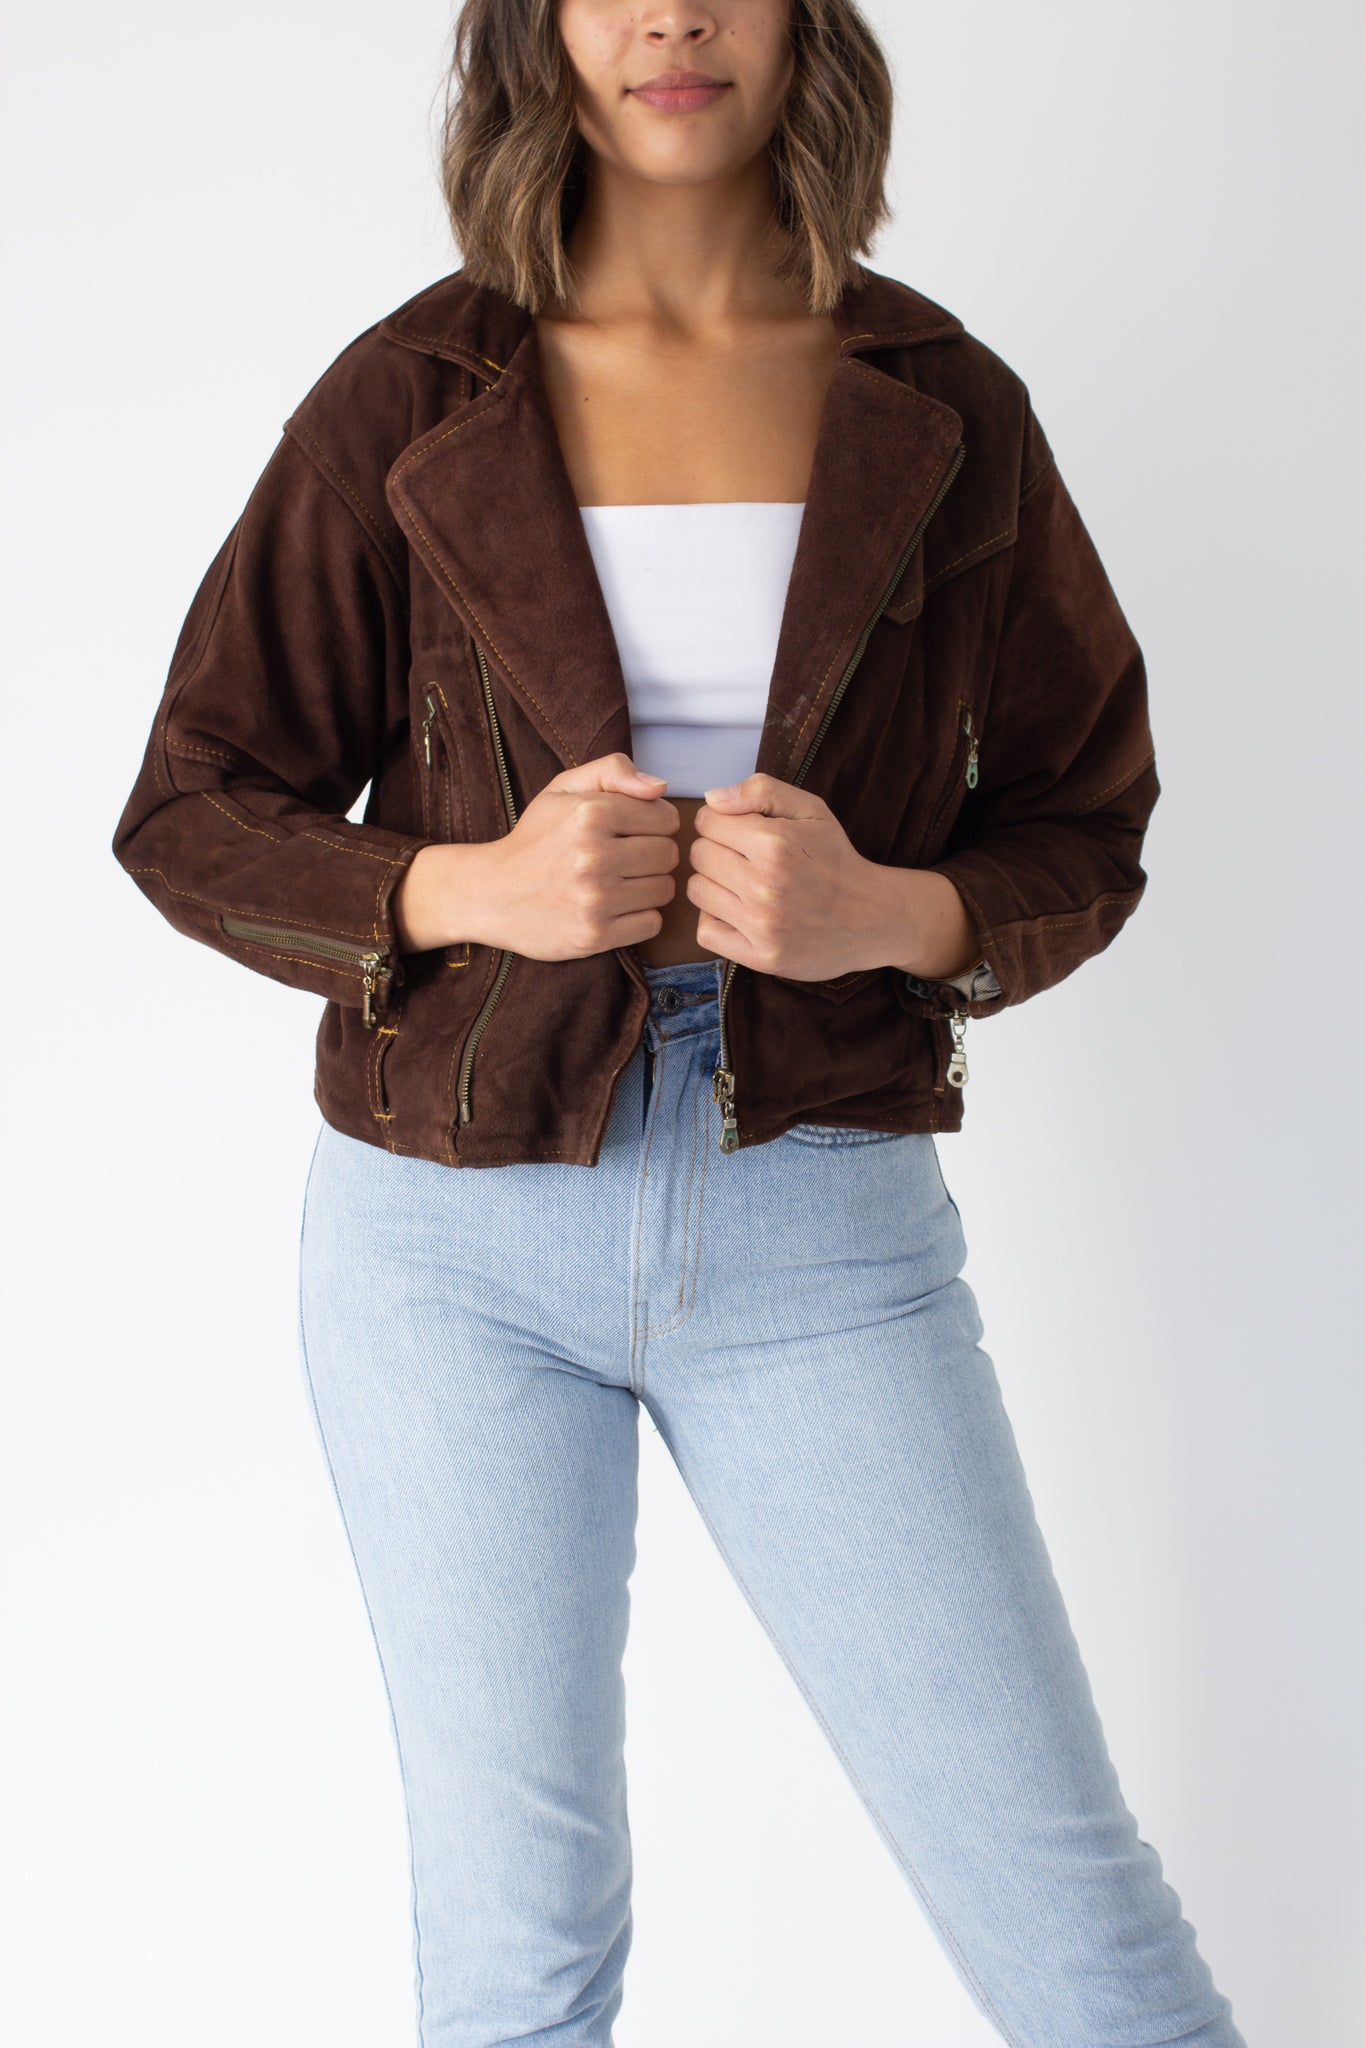 80s Brown Suede Motorcycle Jacket - Size XS/S/M